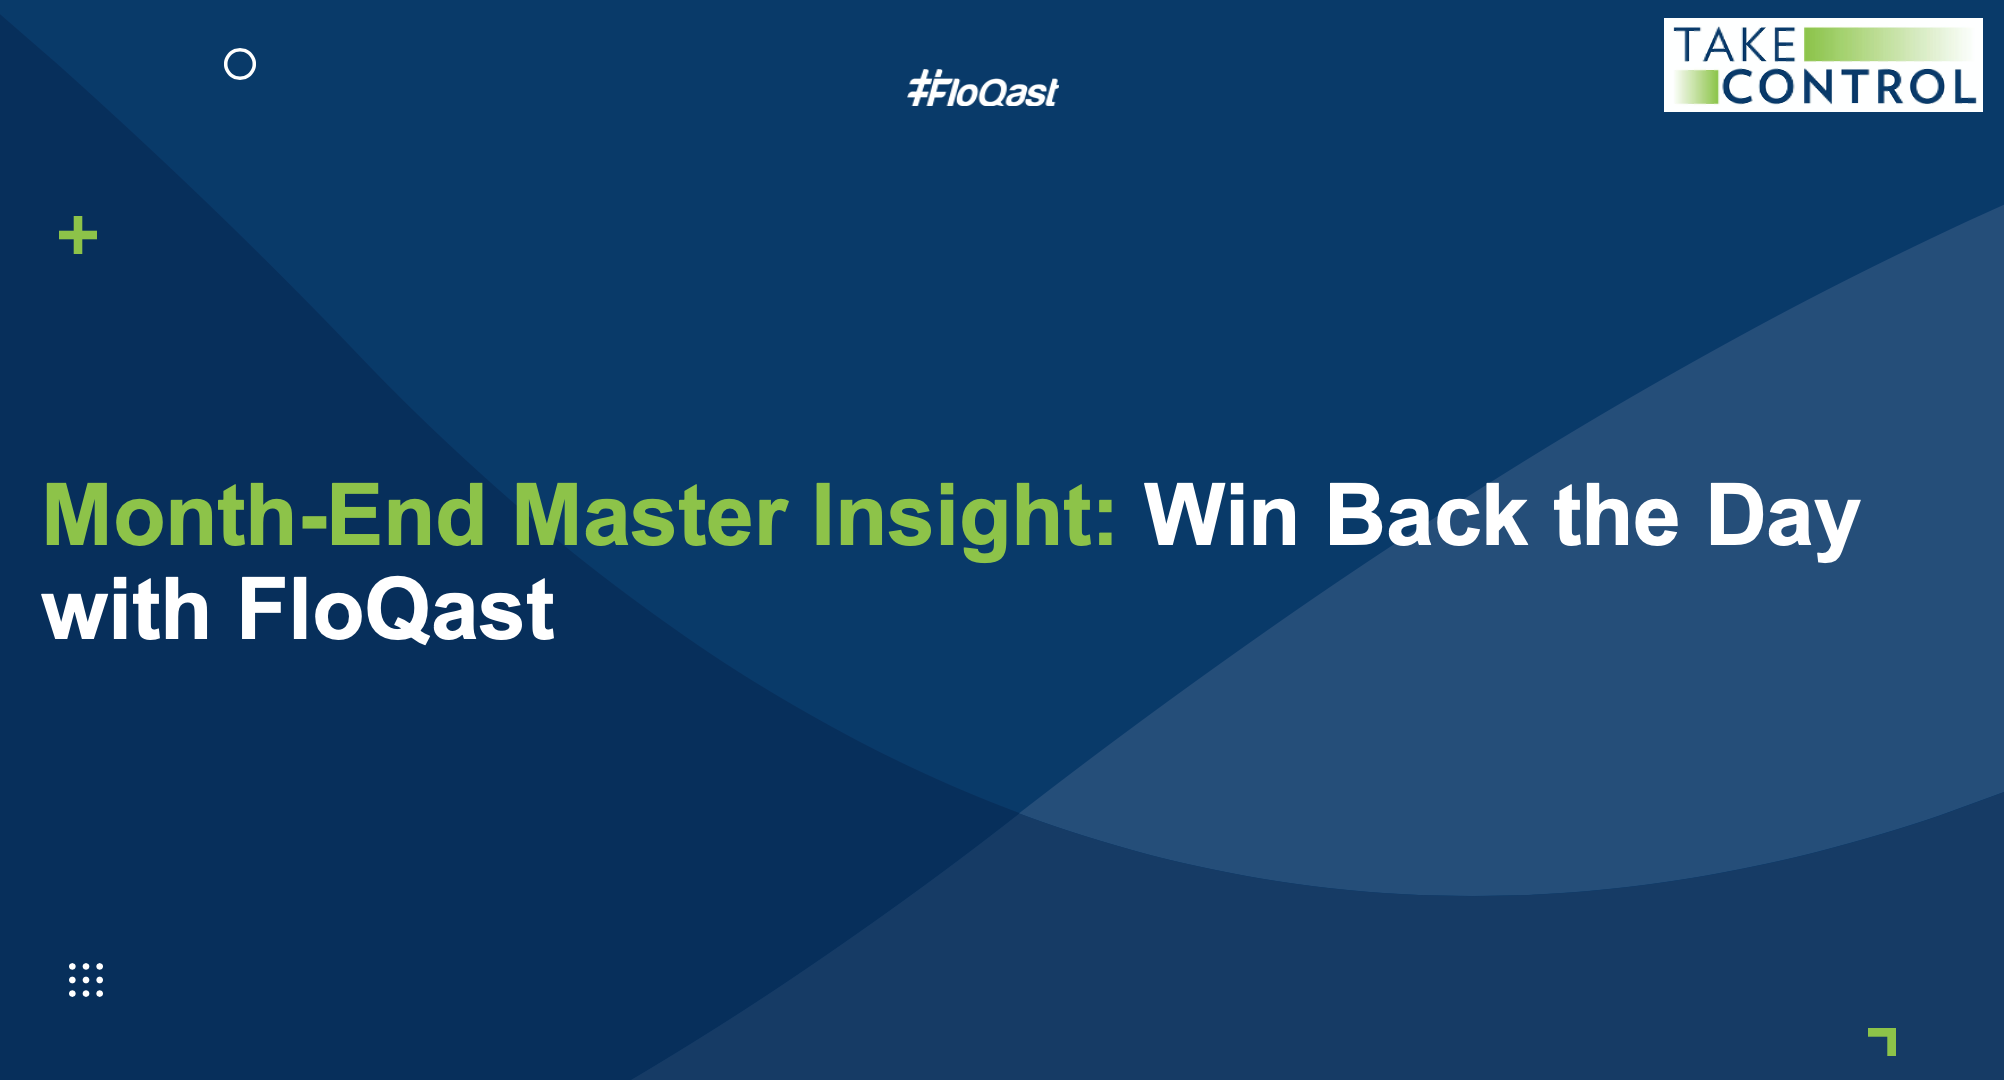 Month-End Master Insight, Win back the day